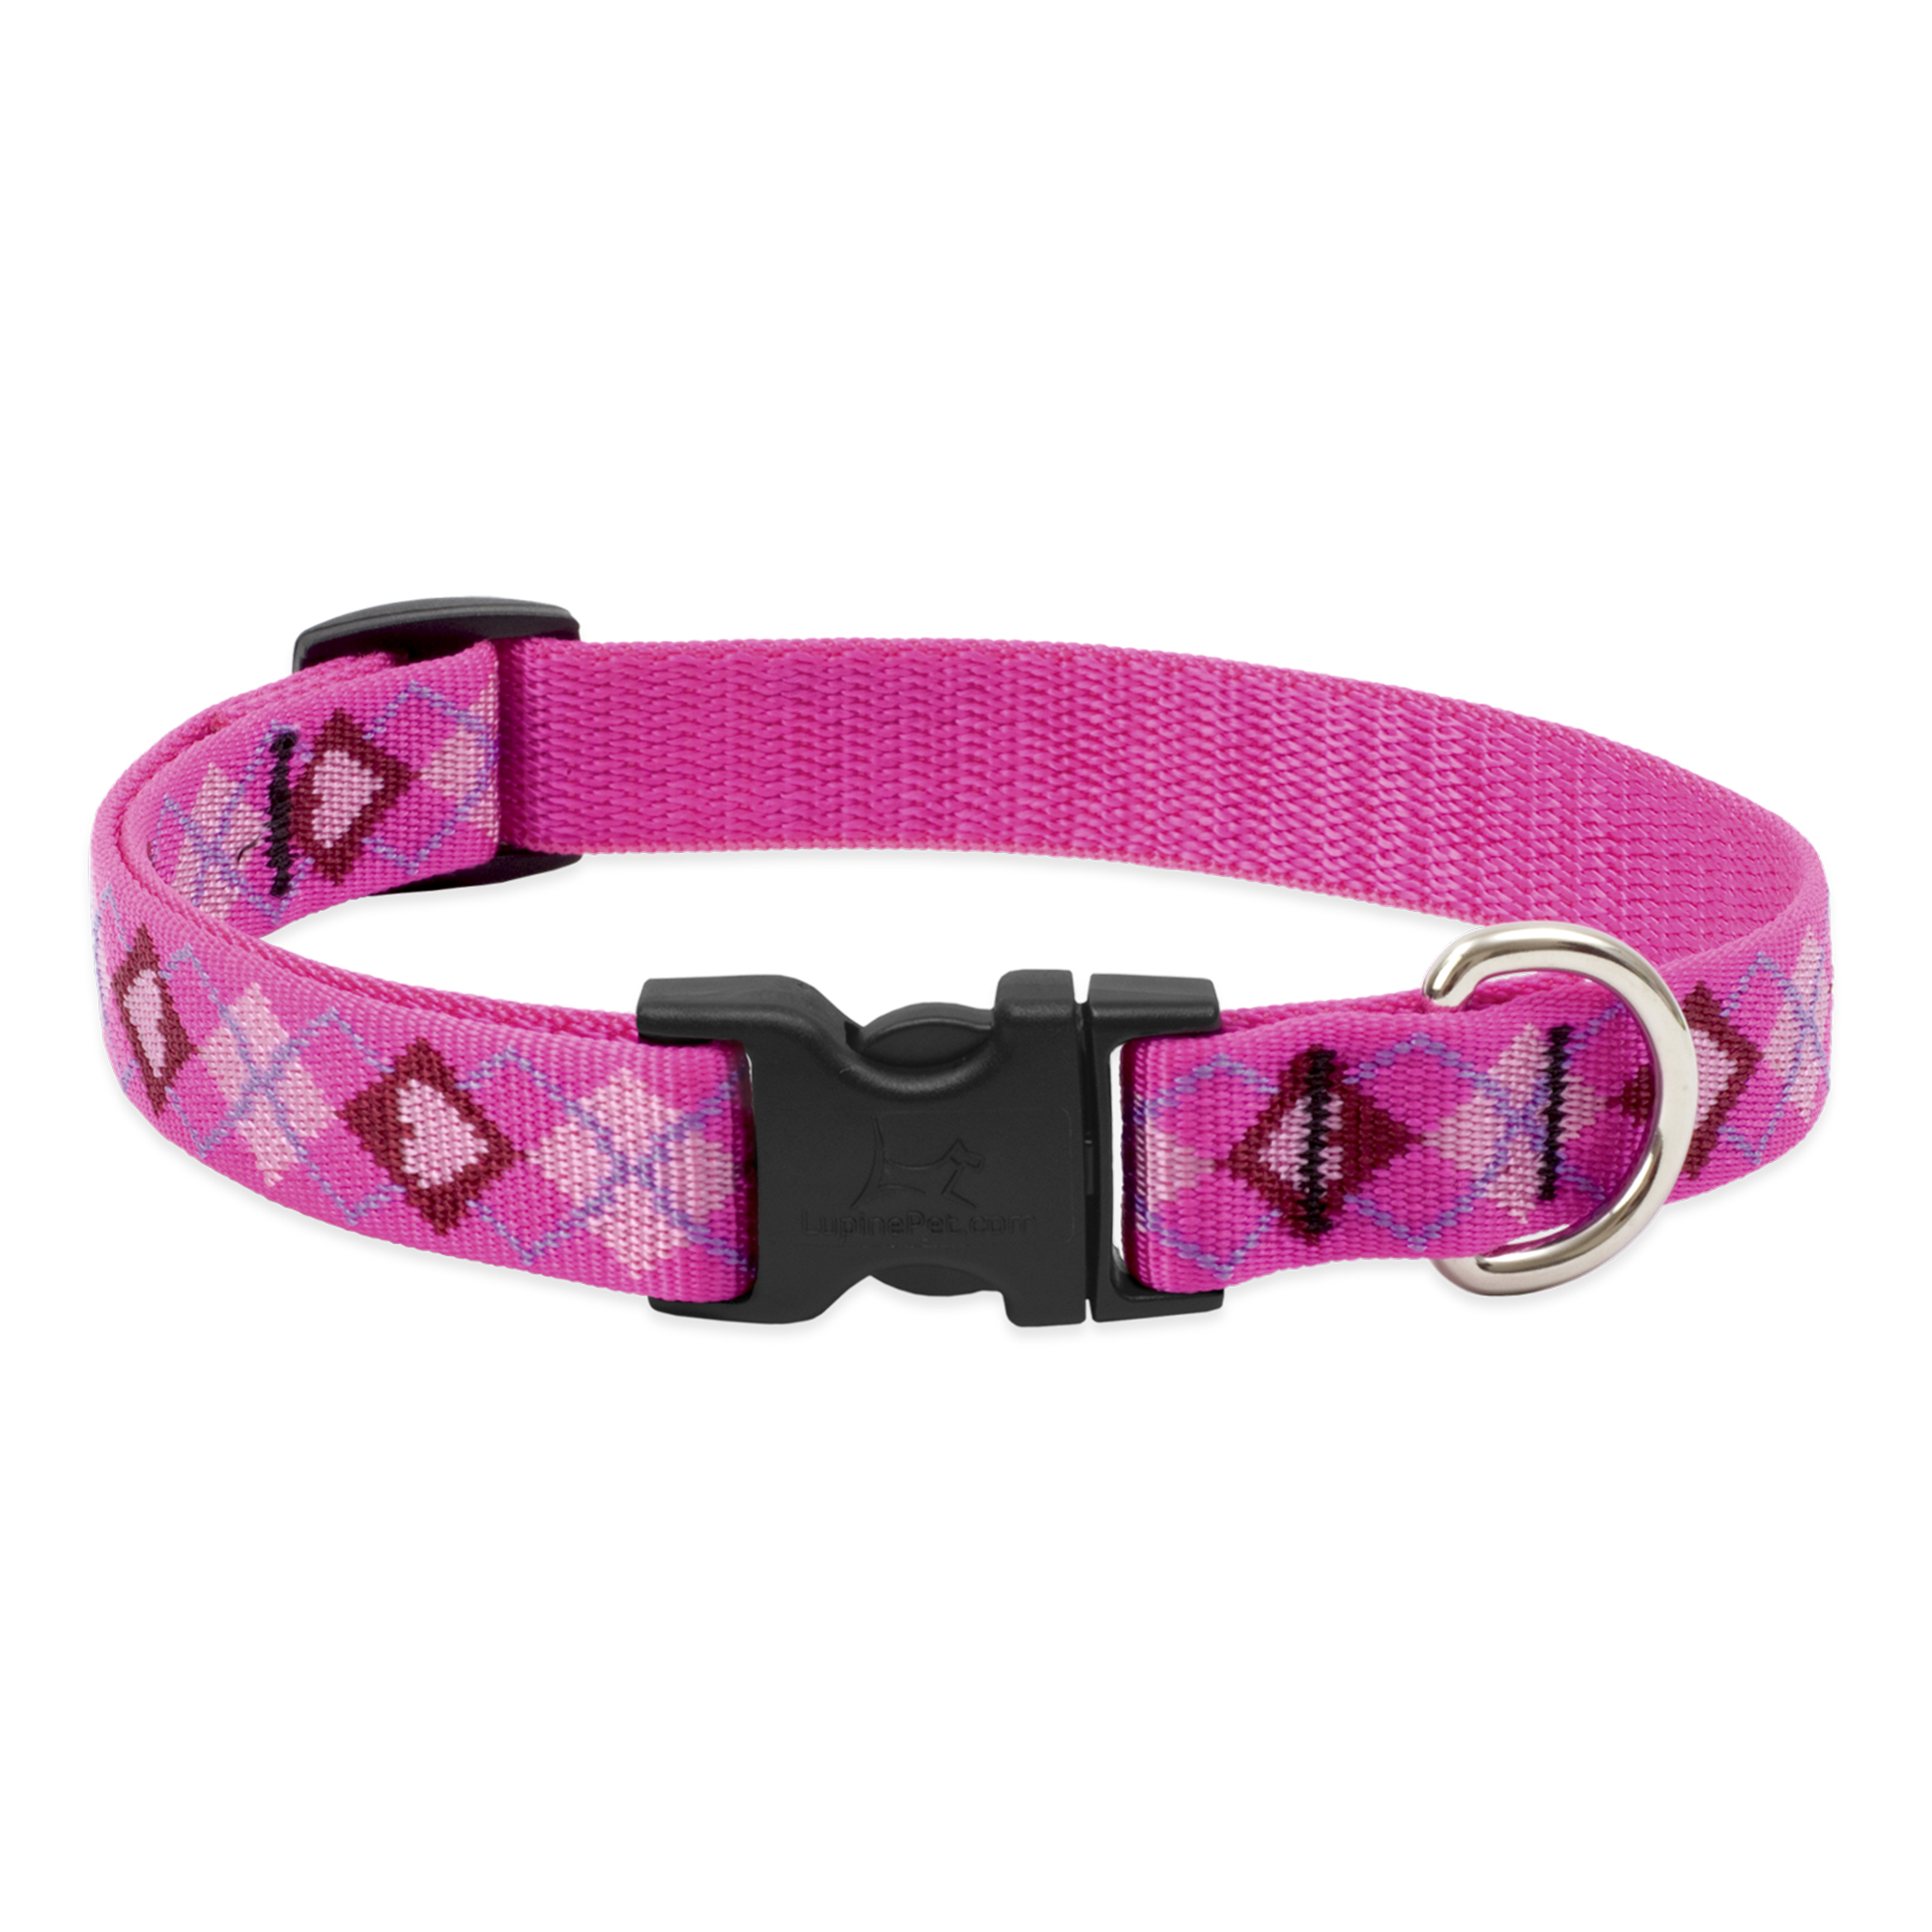 3/4in Puppy Love 13-22 Adj Collar